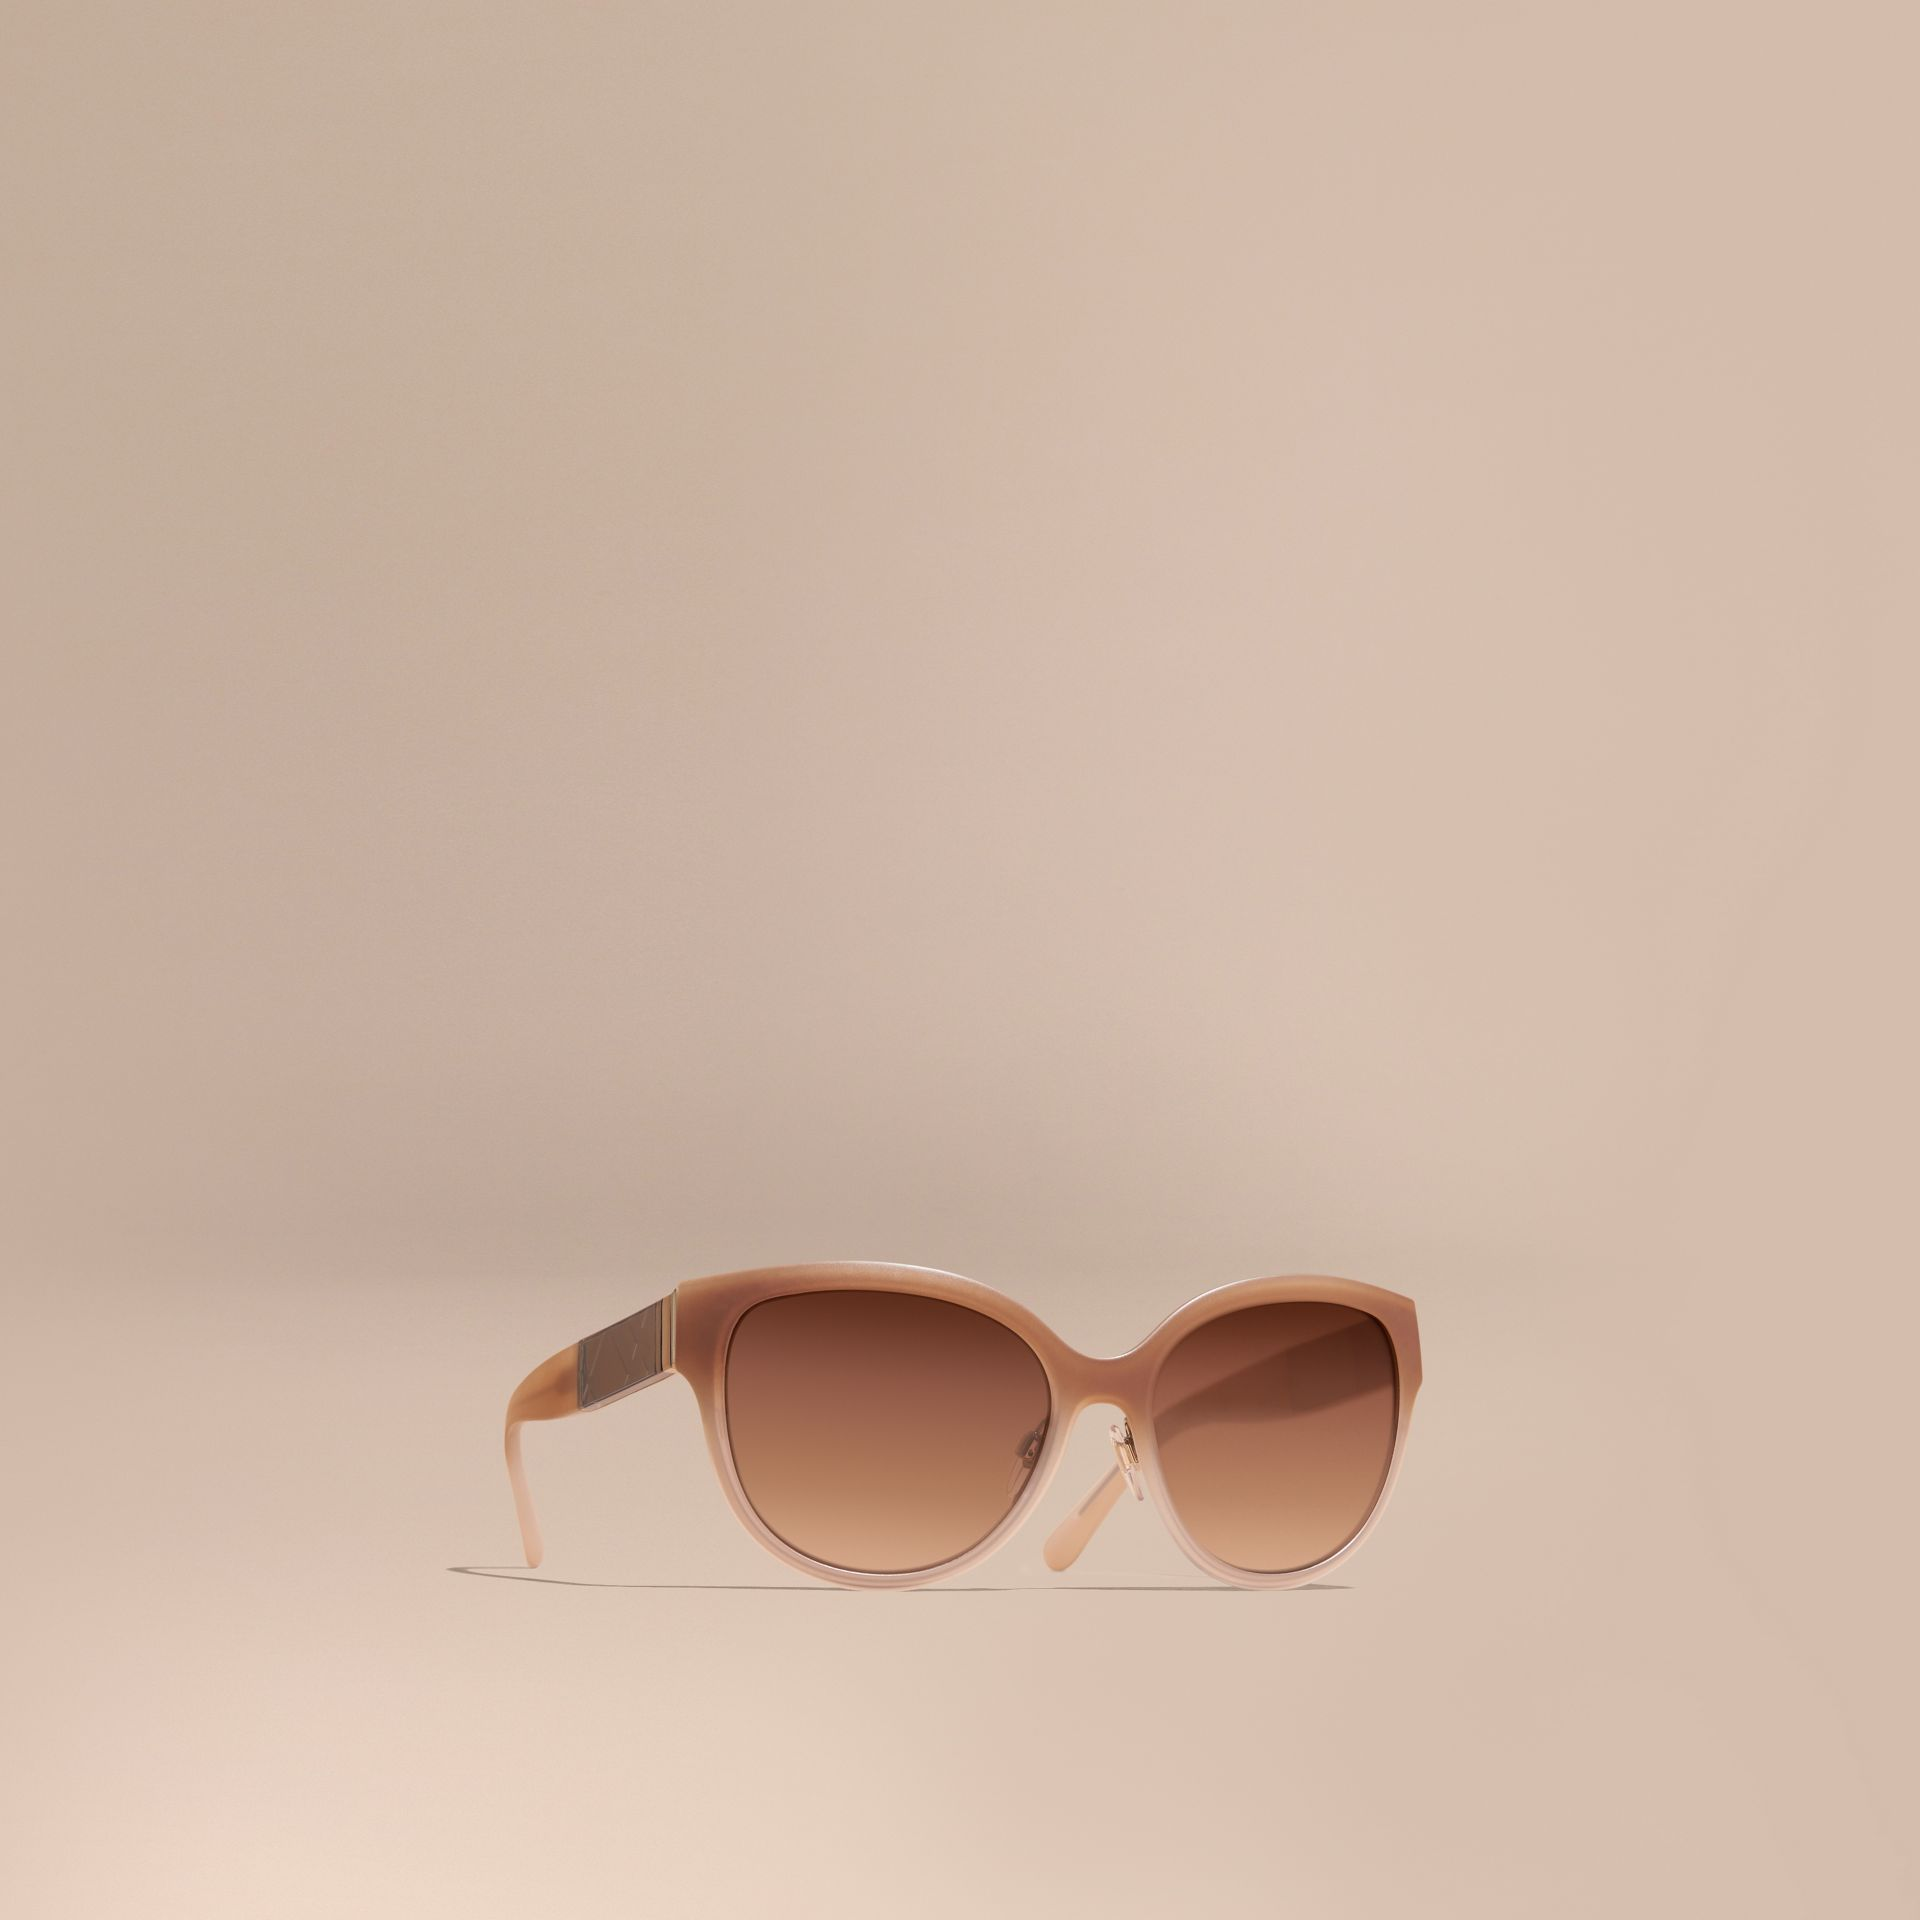 Chino grey Check Detail Round Cat-eye Sunglasses Chino Grey - gallery image 1